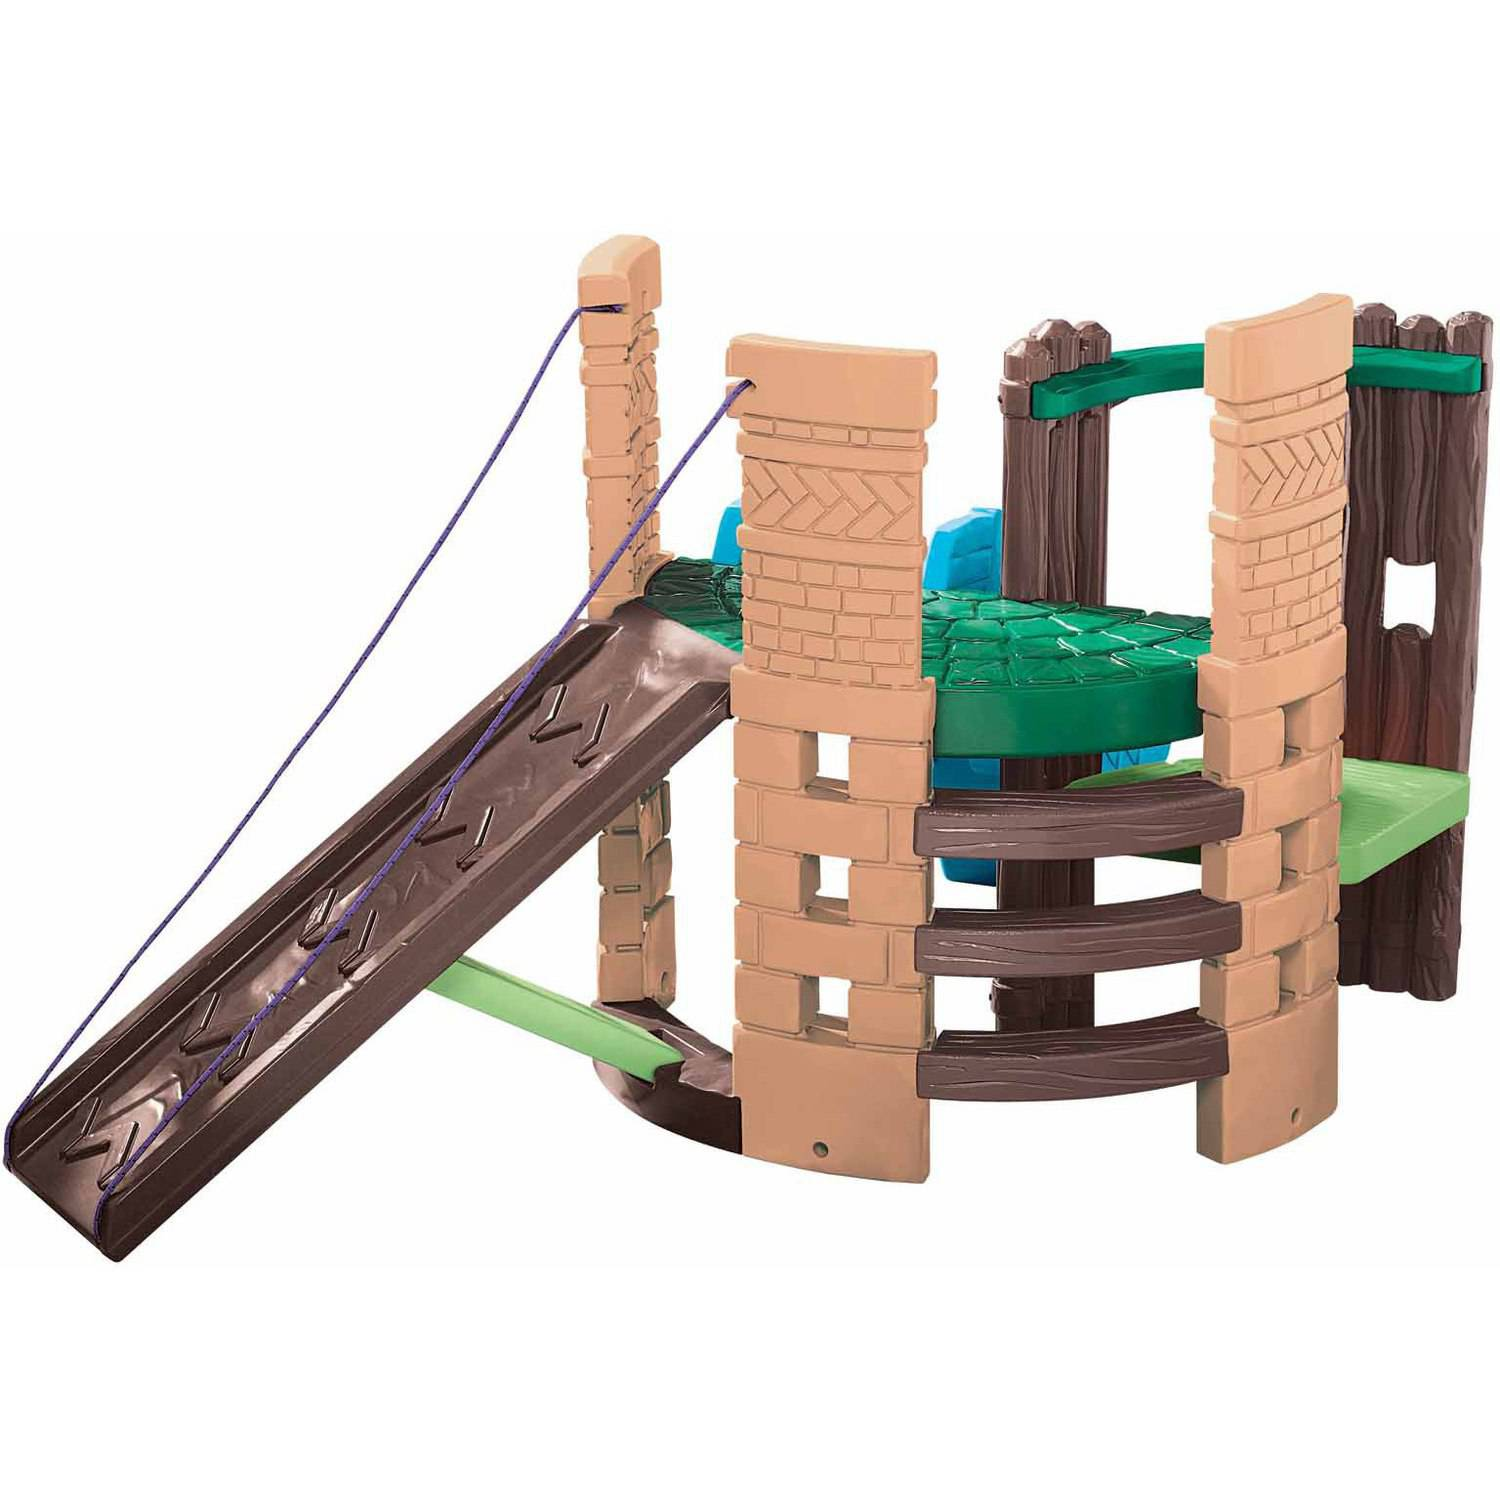 Little Tikes 2-in-1 Castle Climber by MGA Entertainment